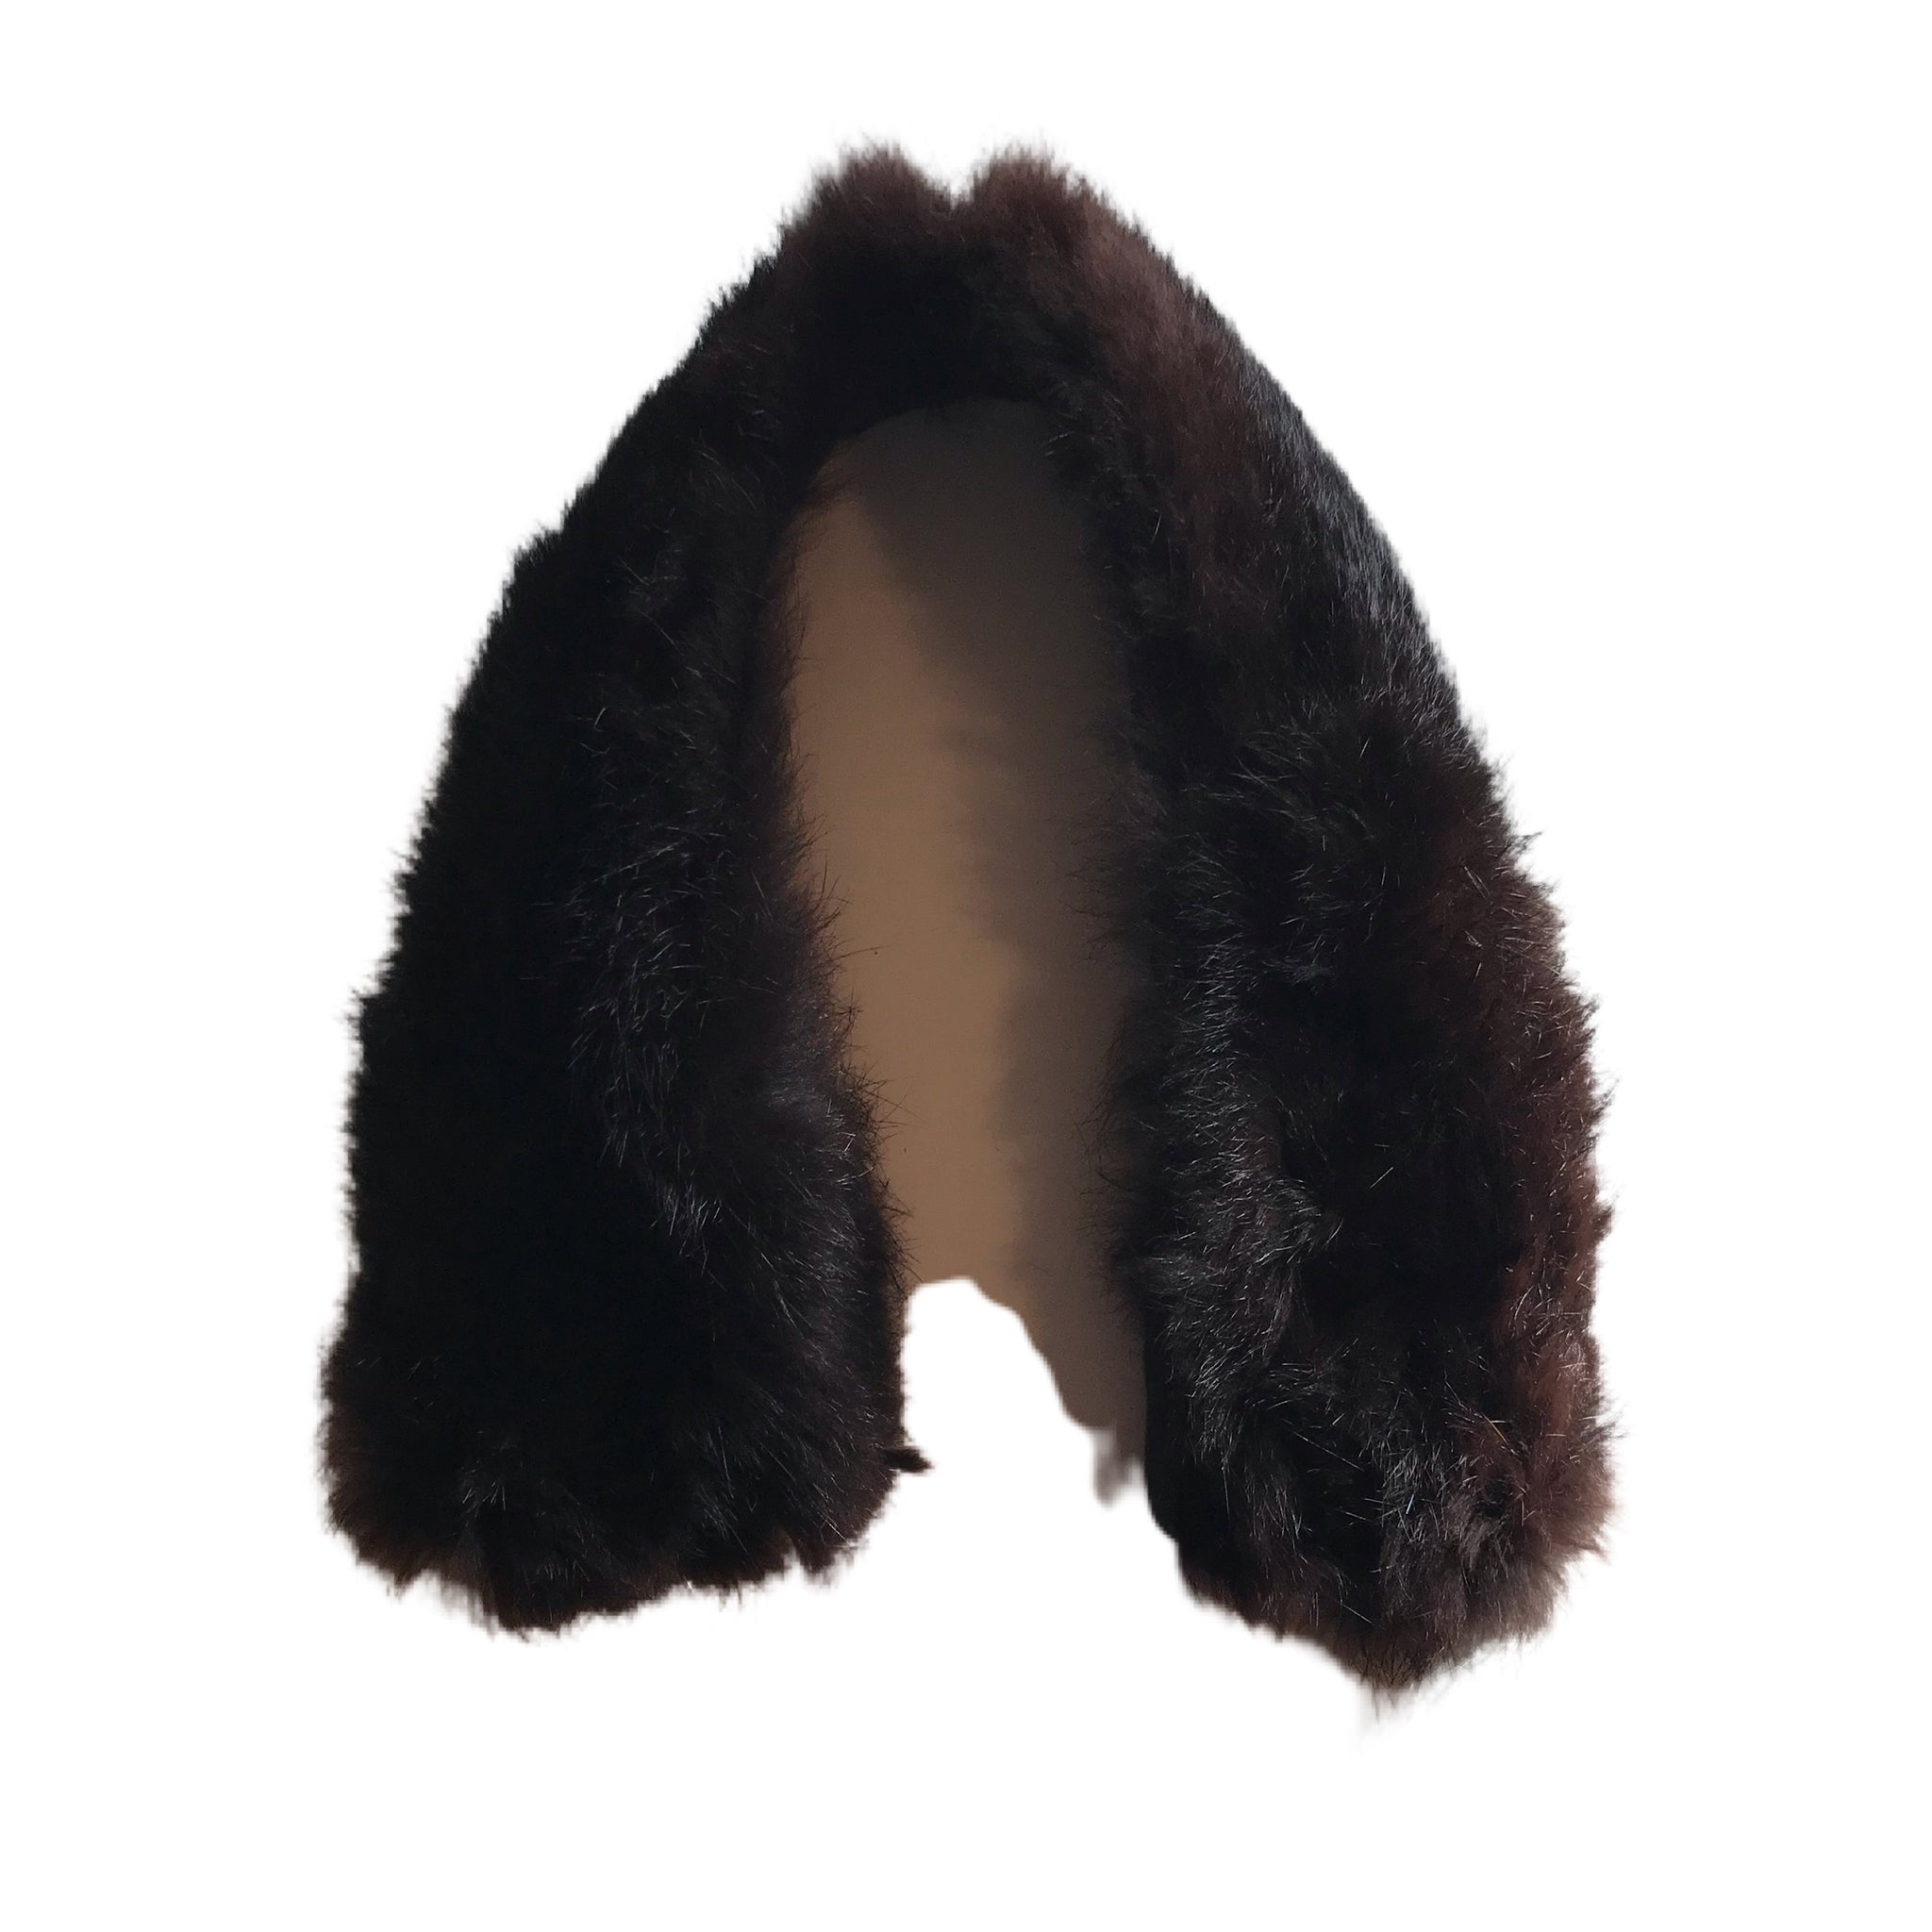 Small Deepest Brown Muskrat Fur Collar circa 1960s